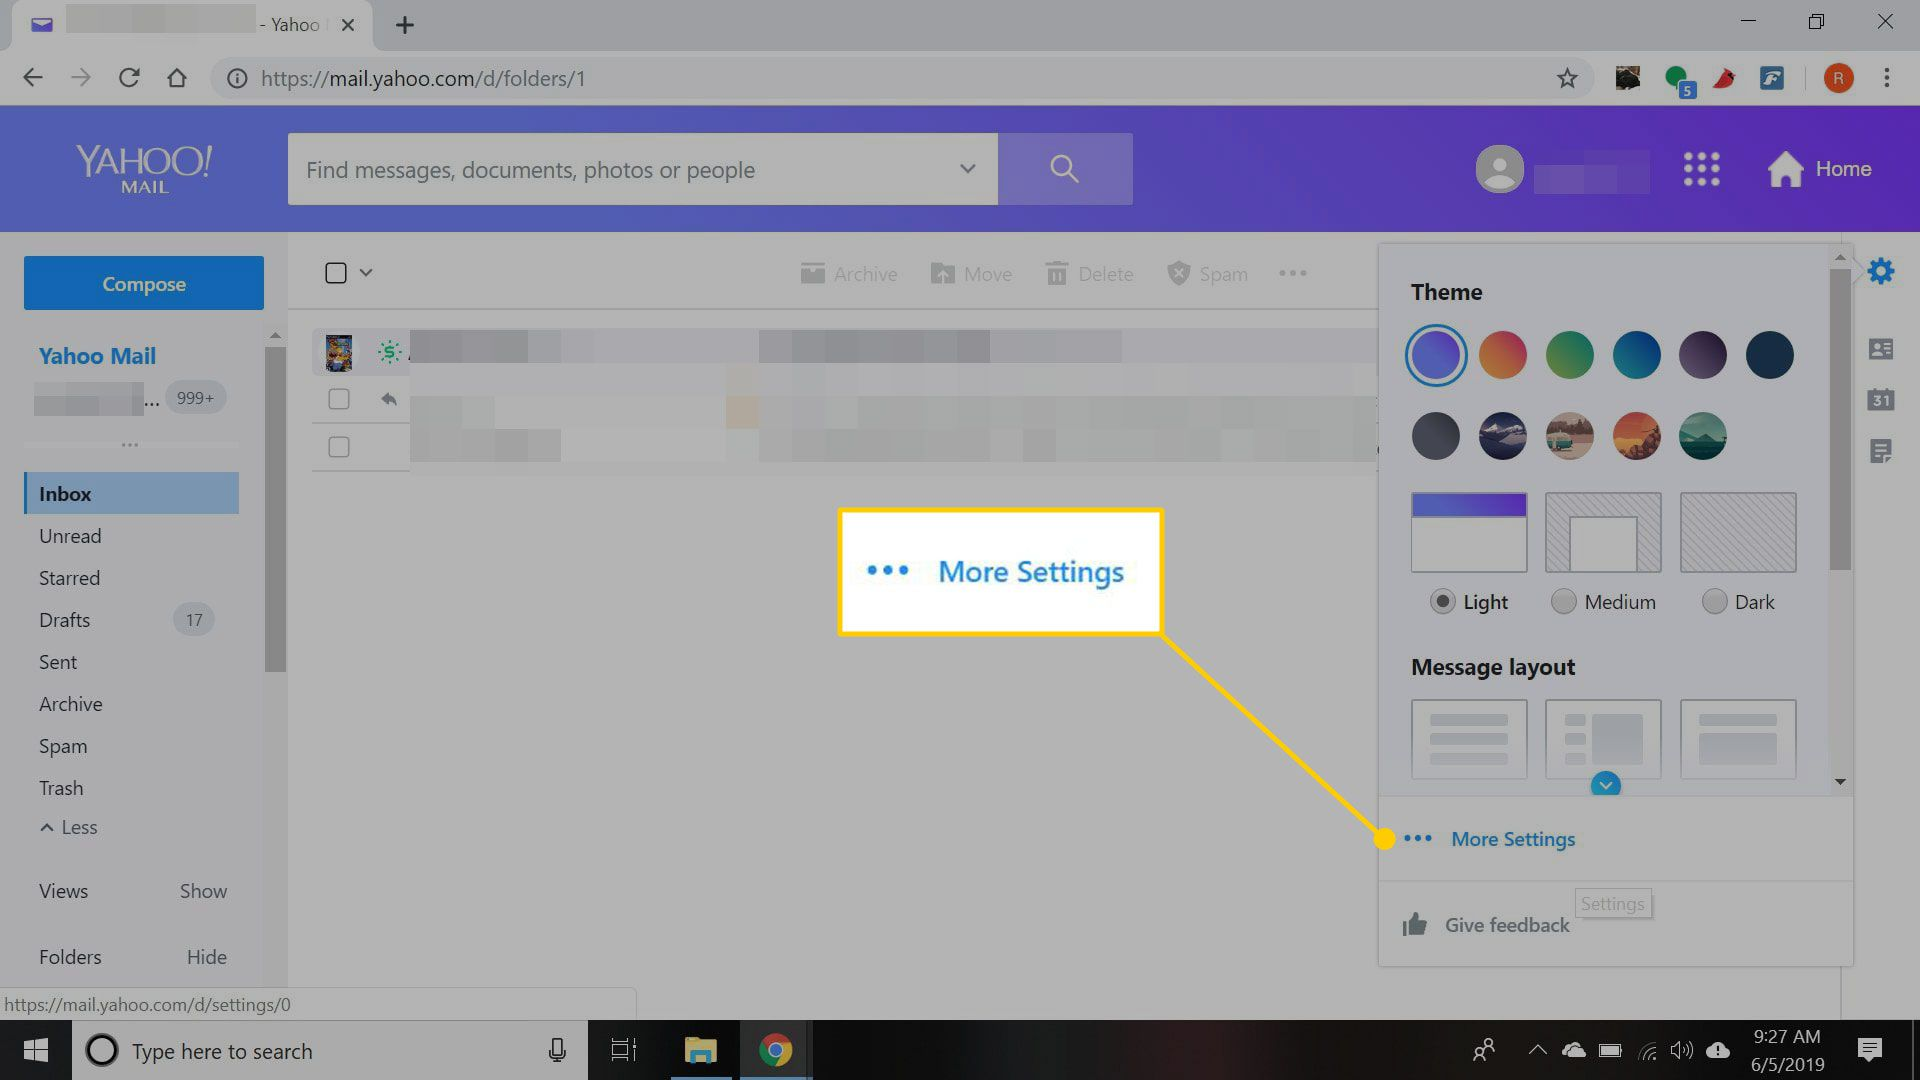 Yahoo Mail gear menu with the More Settings button highlighted